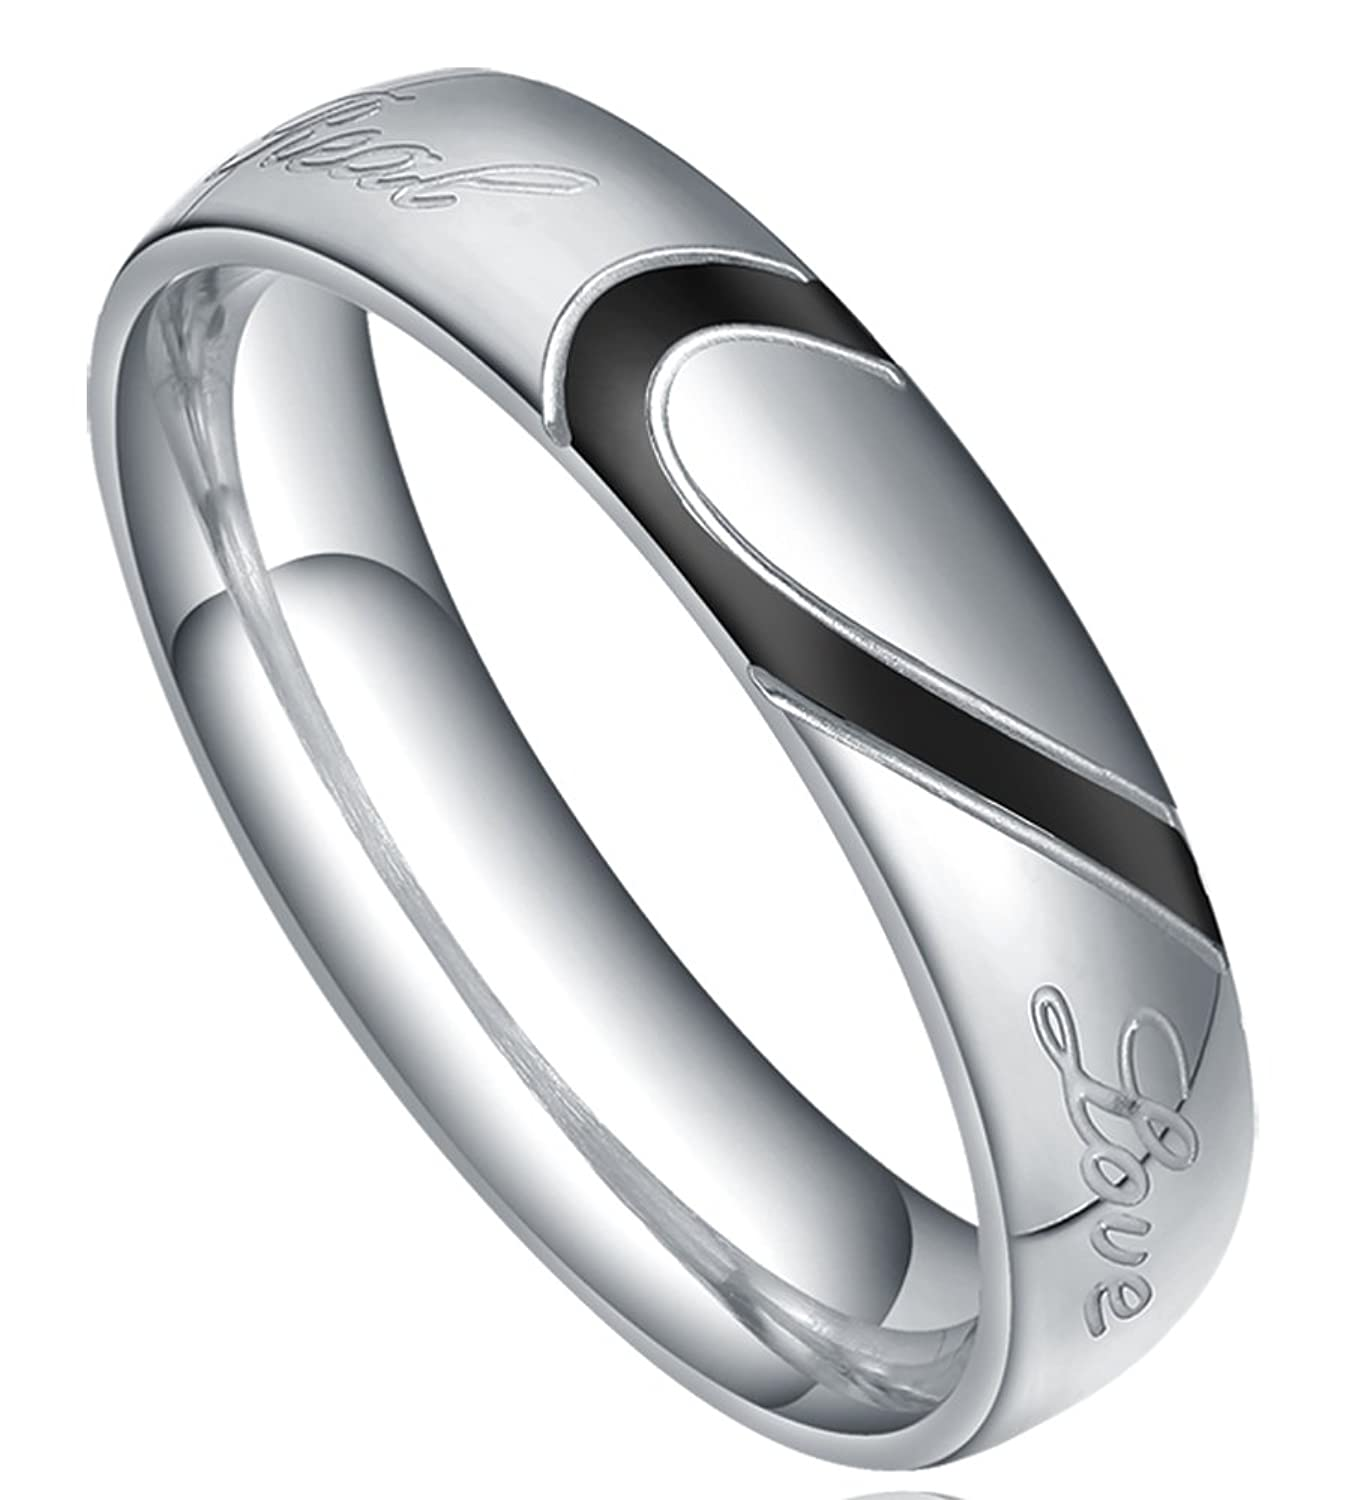 "TIGRADE Jewelry Mens Womens ""Real Love"" Heart Couples Matching Stainless Steel Band Rings Engagement Wedding Promise Size 4-15"